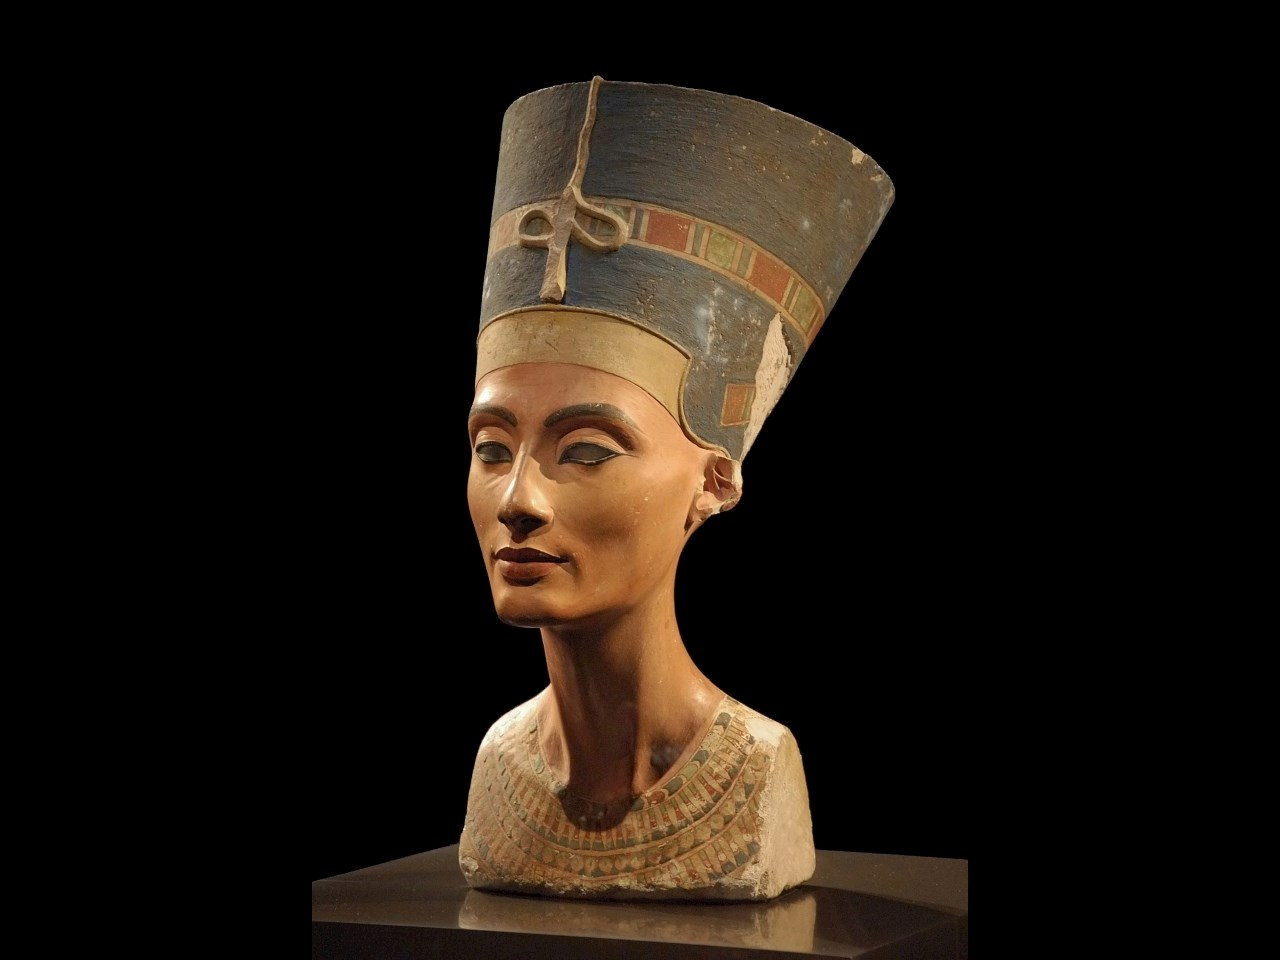 Queen Nefertiti, Tutankhamun mother-in-law